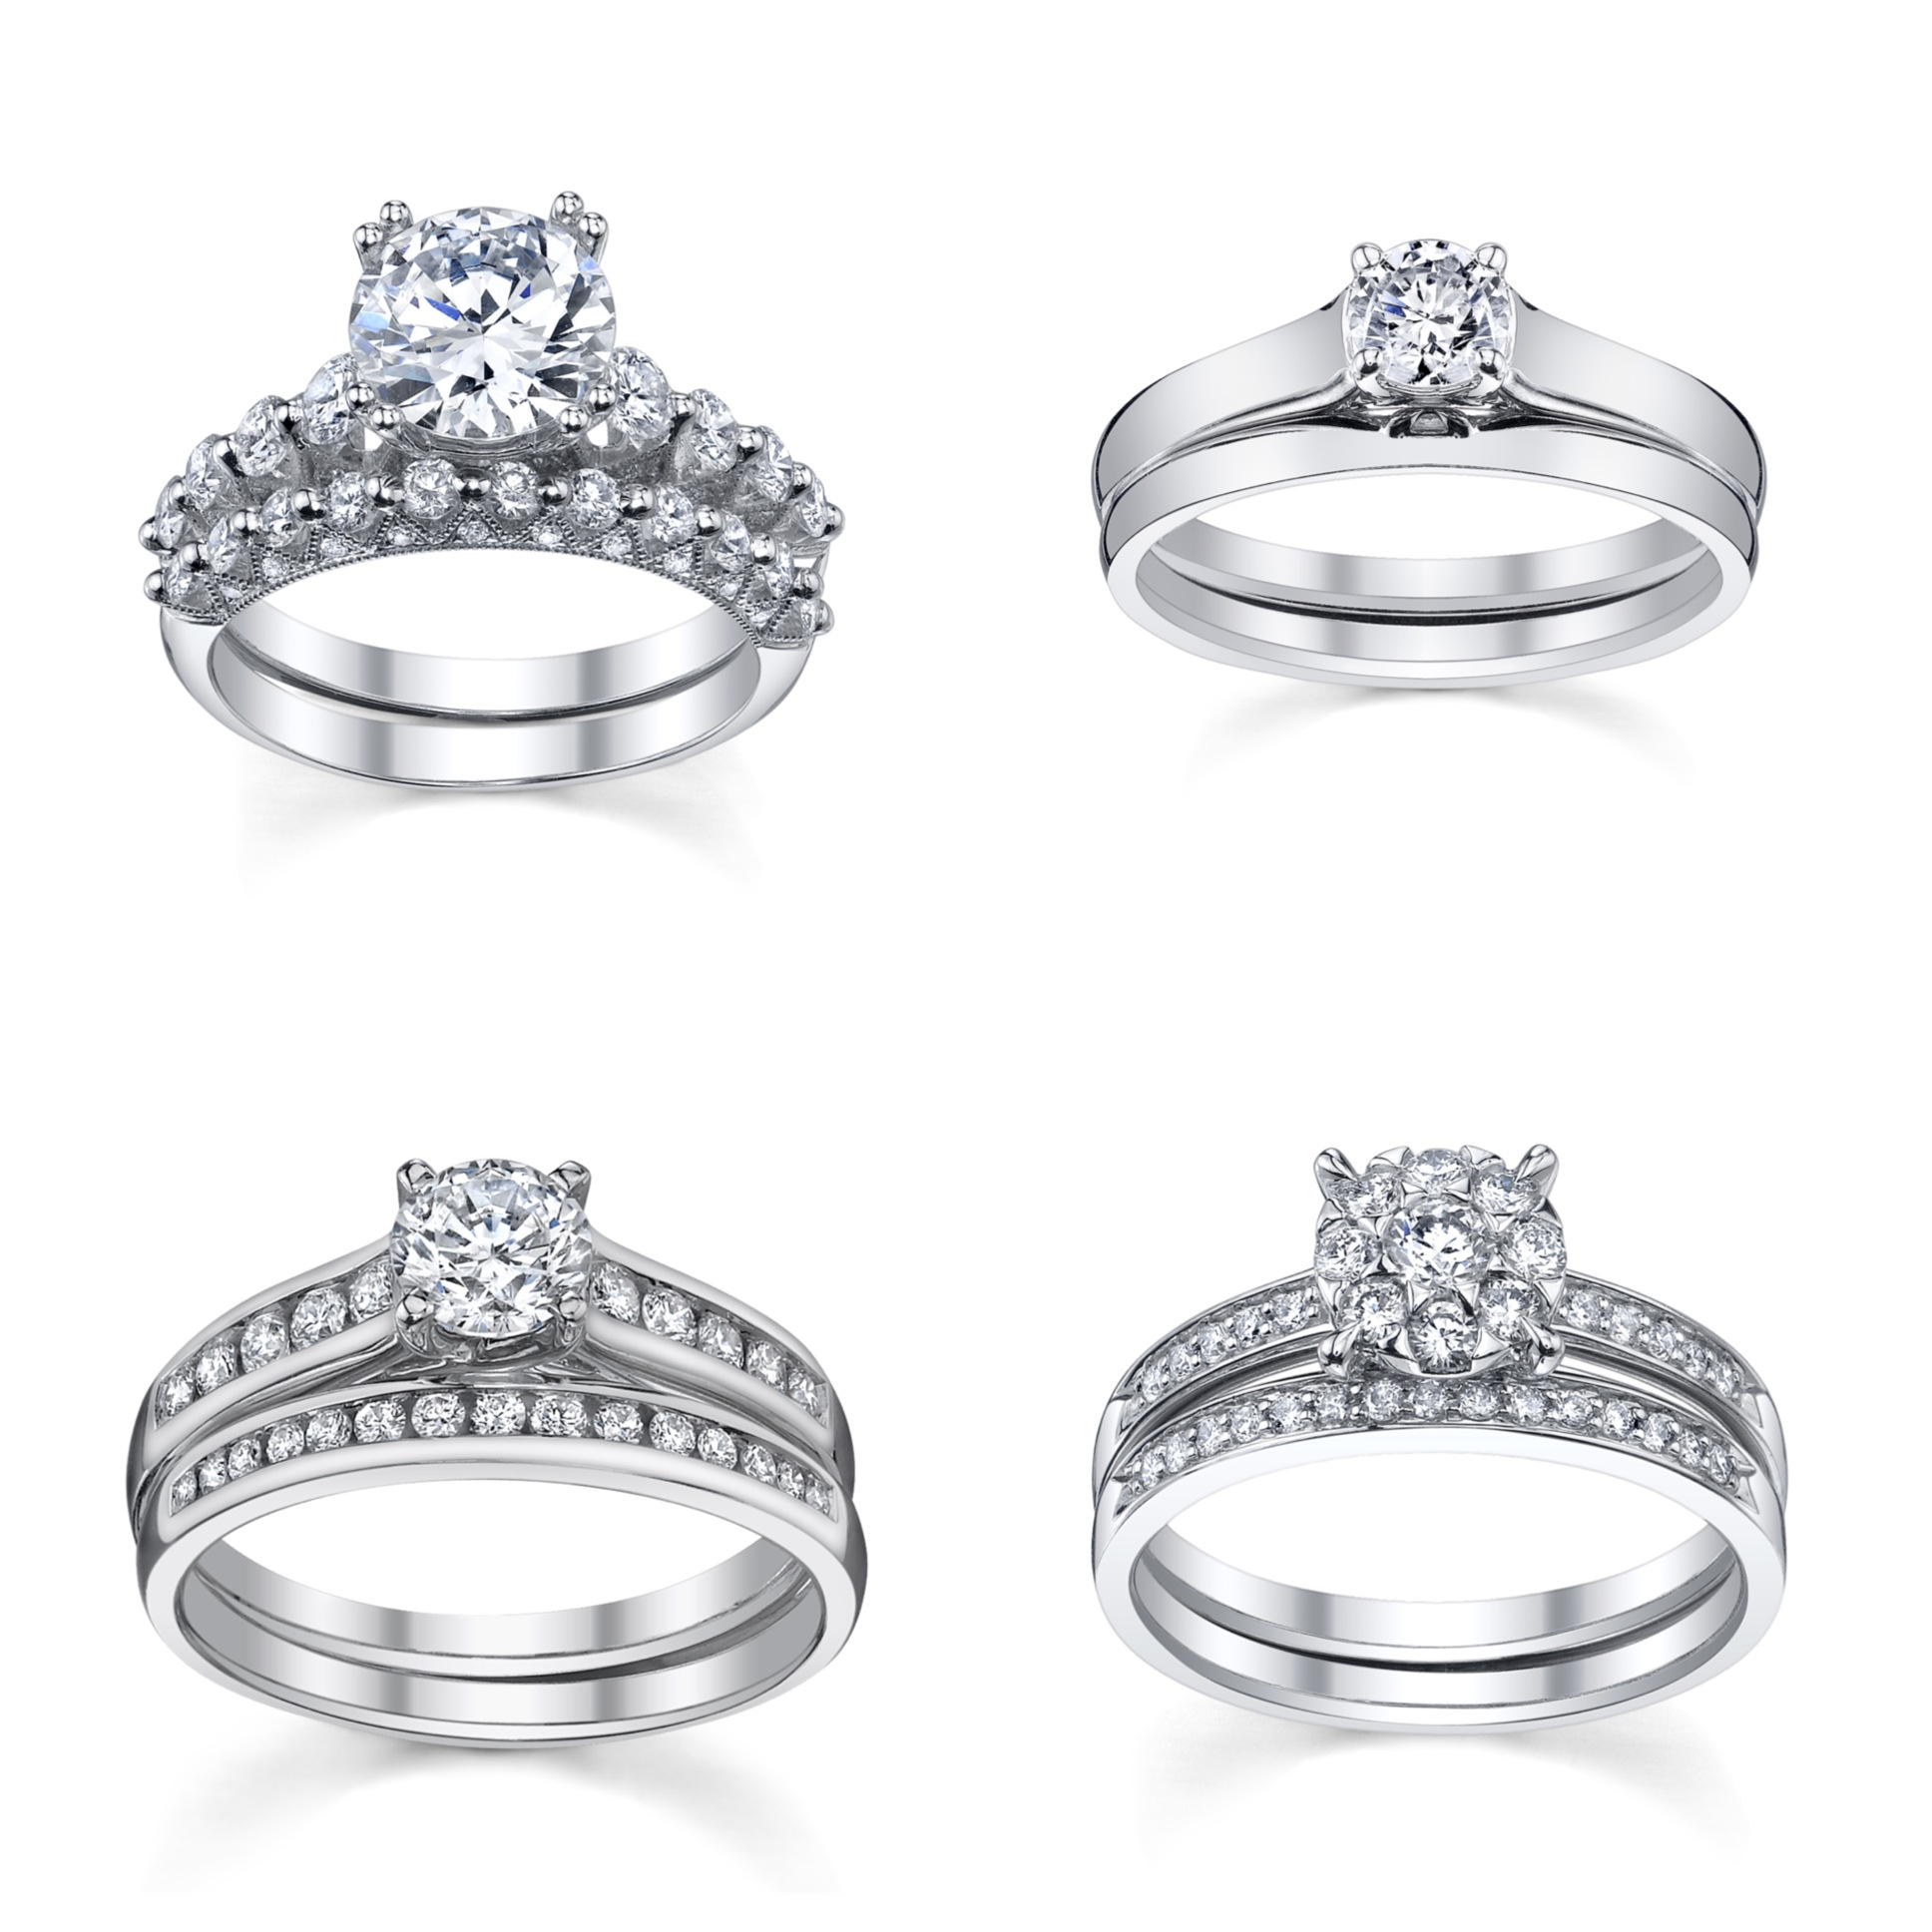 custom of band rings sets luxury amp engagement jewellery wedding bridal